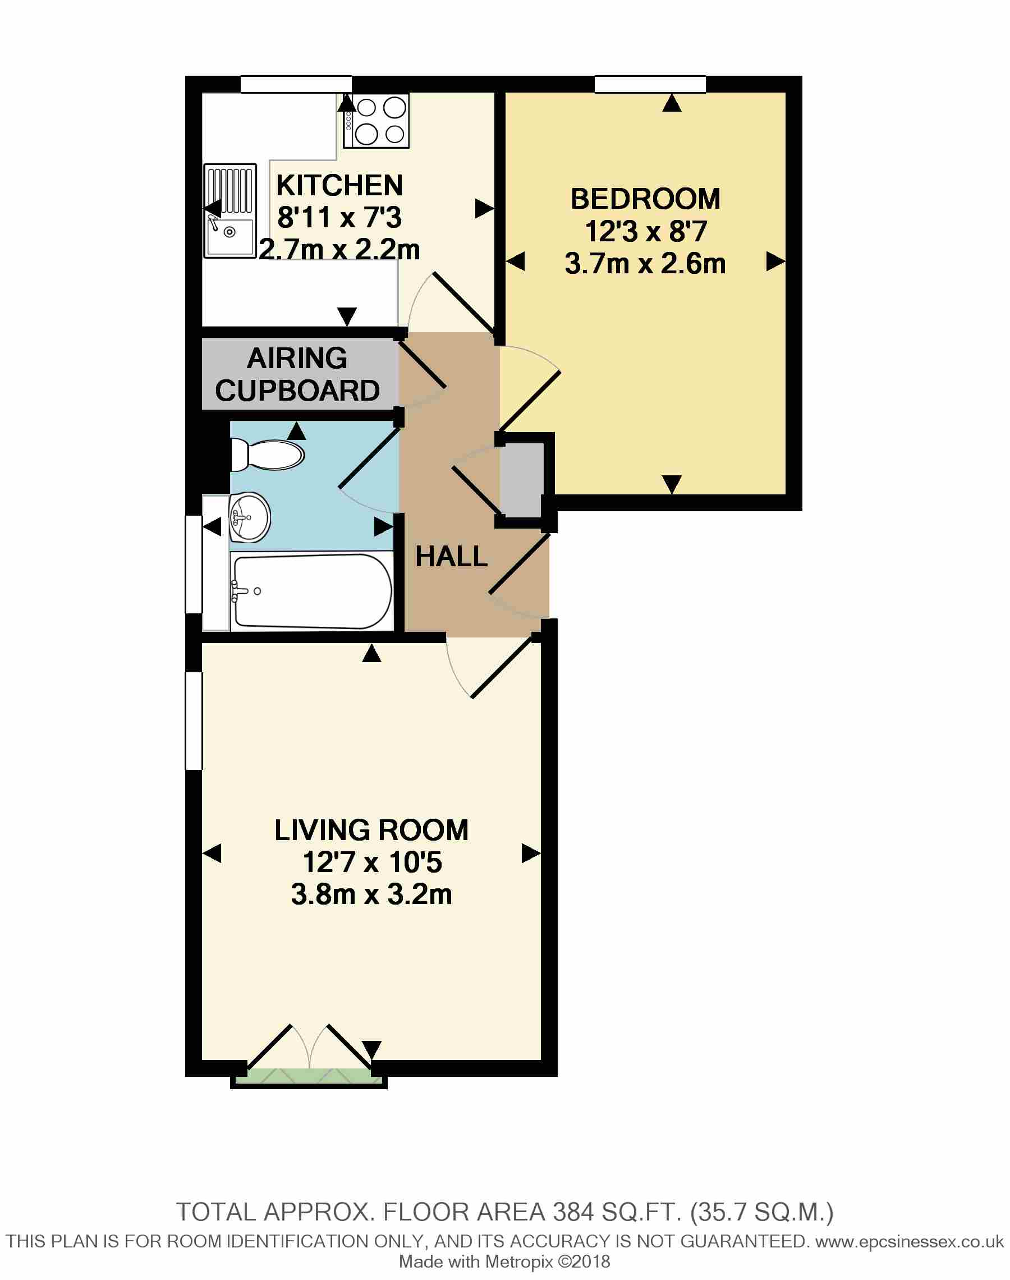 Floorplan of York Place, Shafter Road, Dagenham, Essex, RM10 8SE